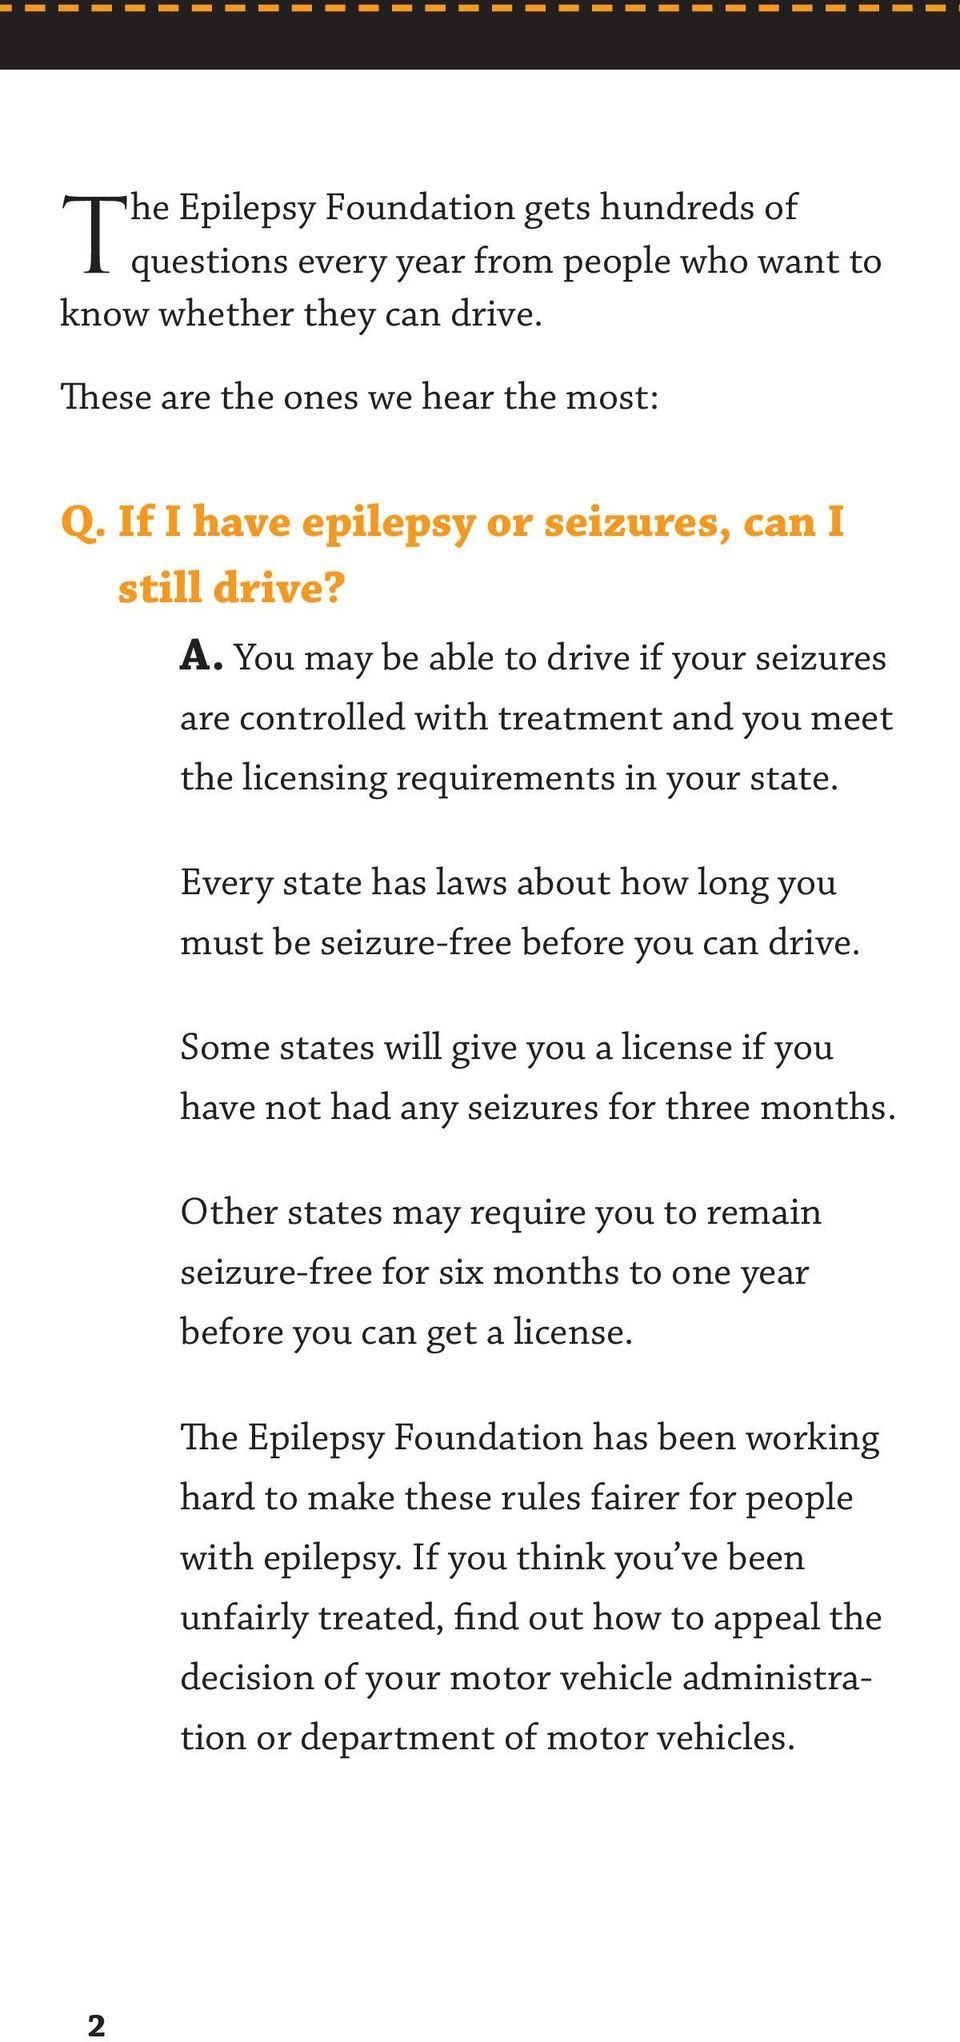 Every state has laws about how long you must be seizure-free before you can drive. Some states will give you a license if you have not had any seizures for three months.